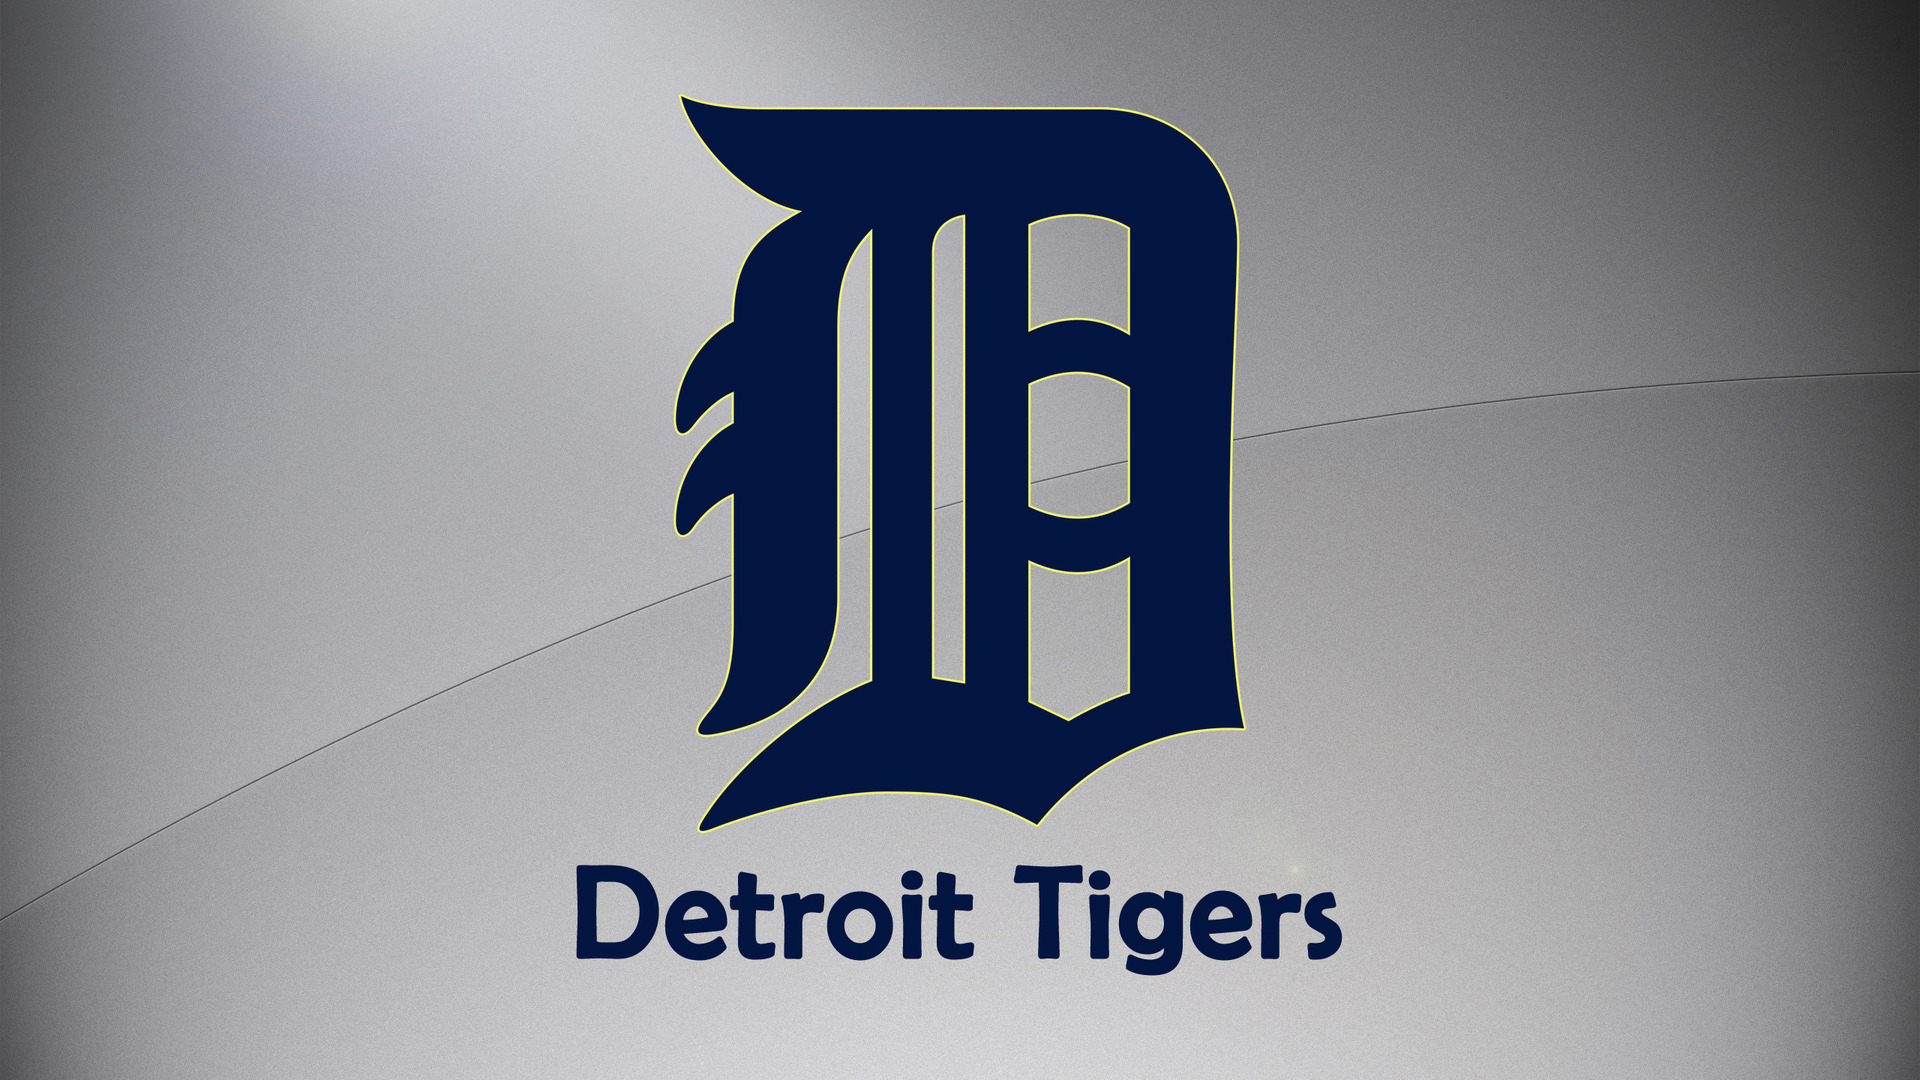 Detroit Tigers Hd Desktop